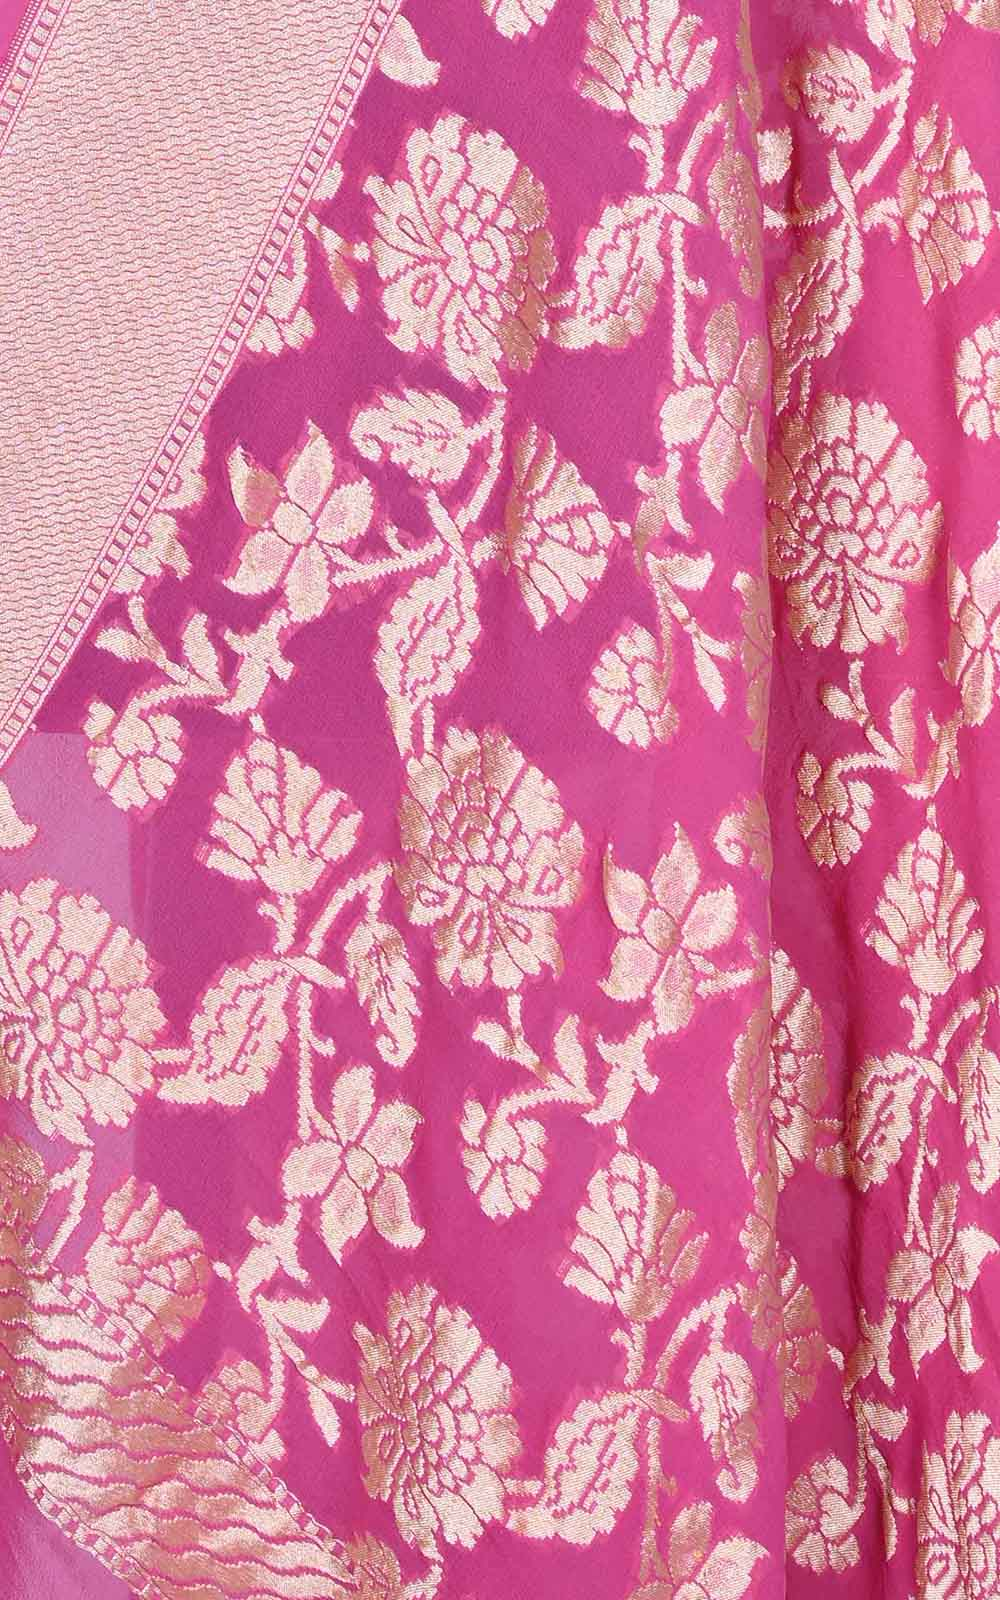 Pink khaddi georgette Banarasi dupatta with floral jaal (2) Close up